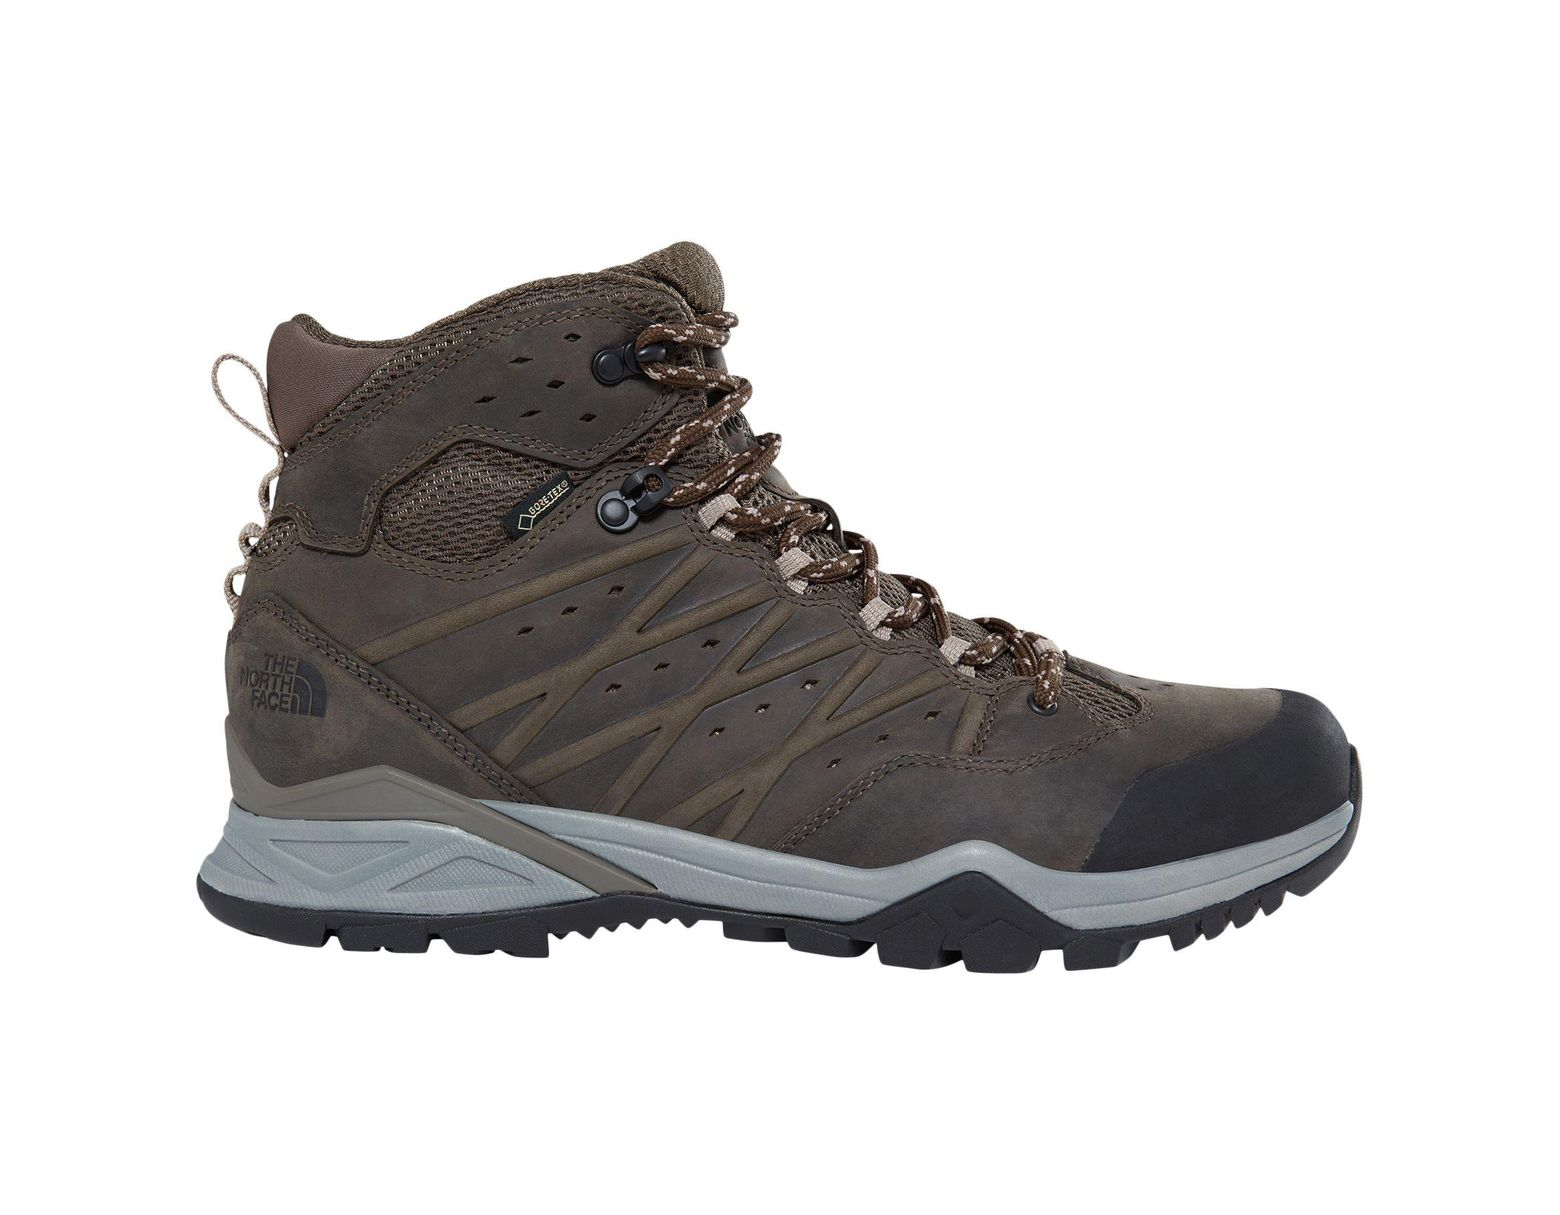 62e6d25cb The North Face Hedgehog Hike 2 Mid Gore-tex Men's Hiking Boots in ...